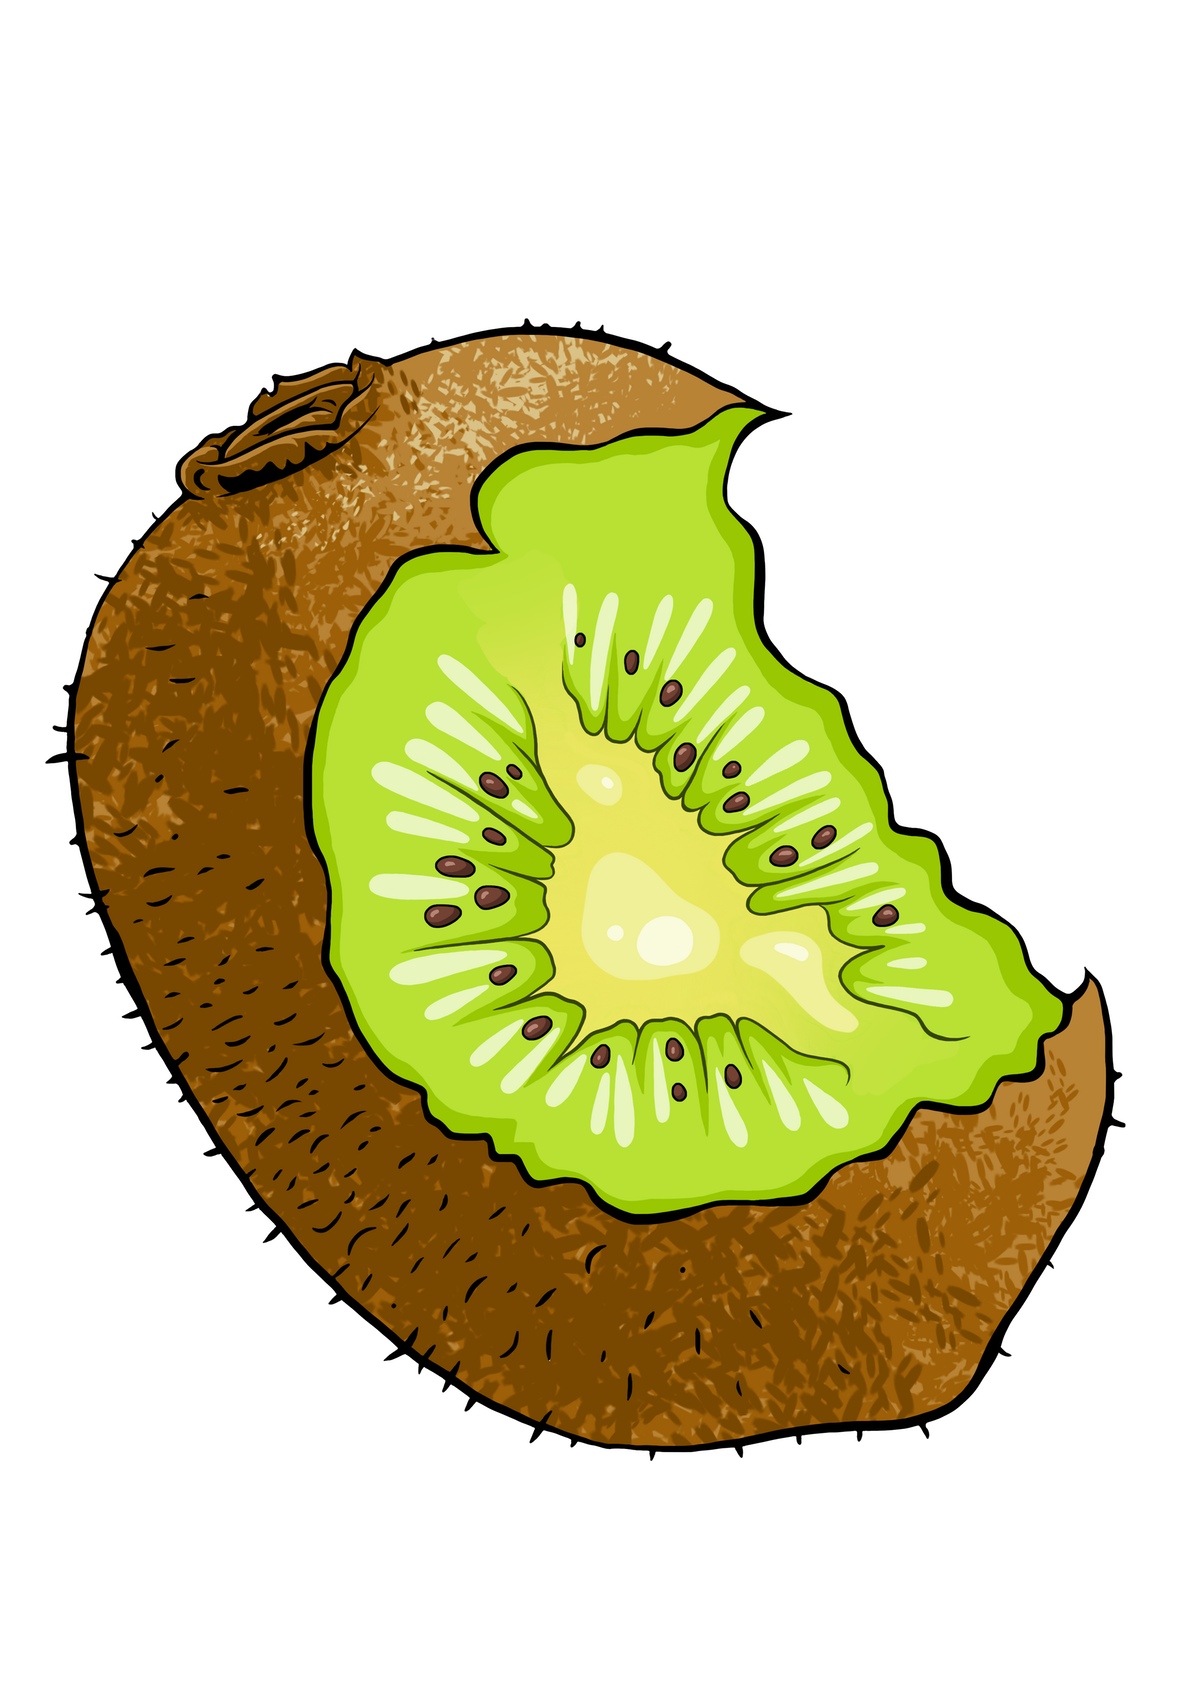 Kiwifruit graphic with bite taken out